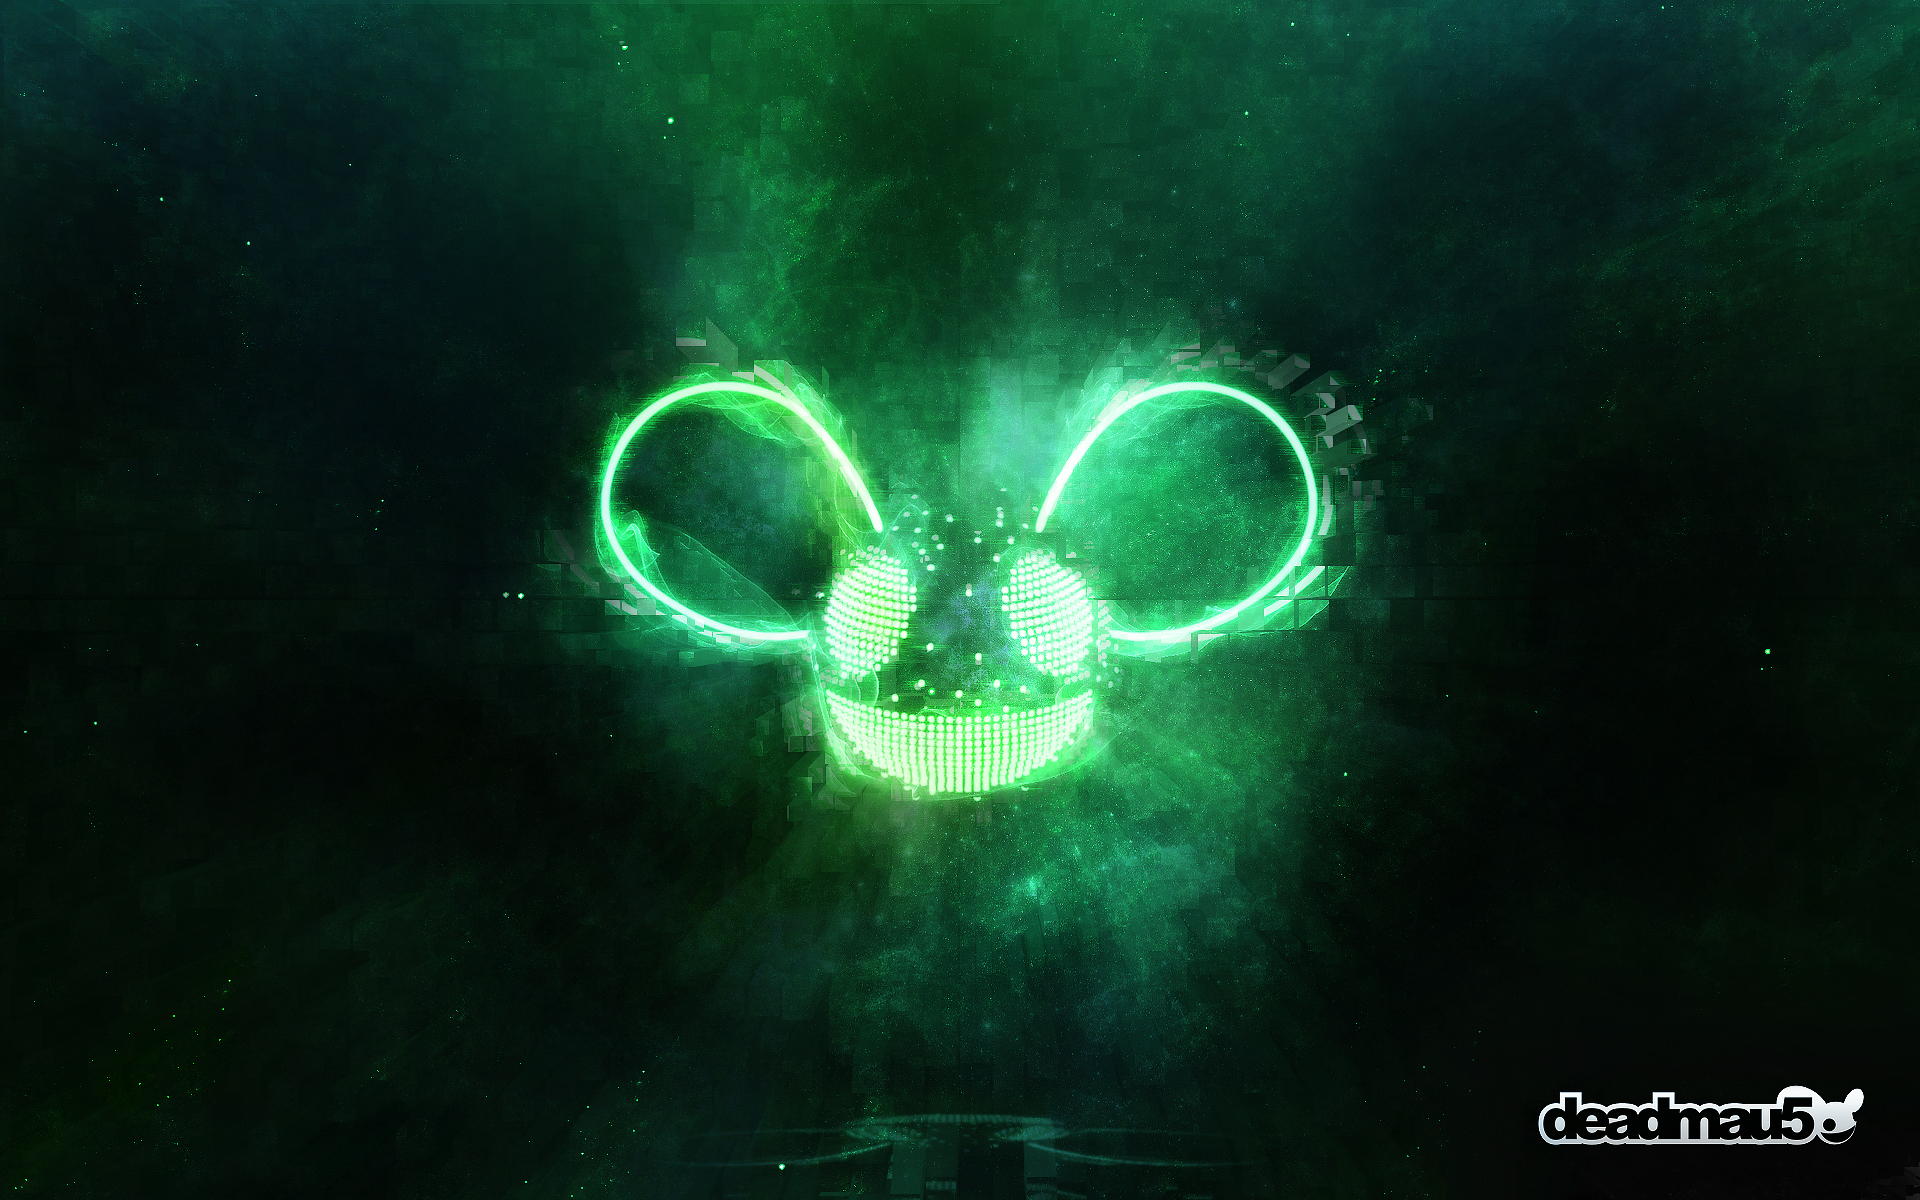 Deadmau5 Res: 1920x1200 / Size:1973kb. Views: 248364